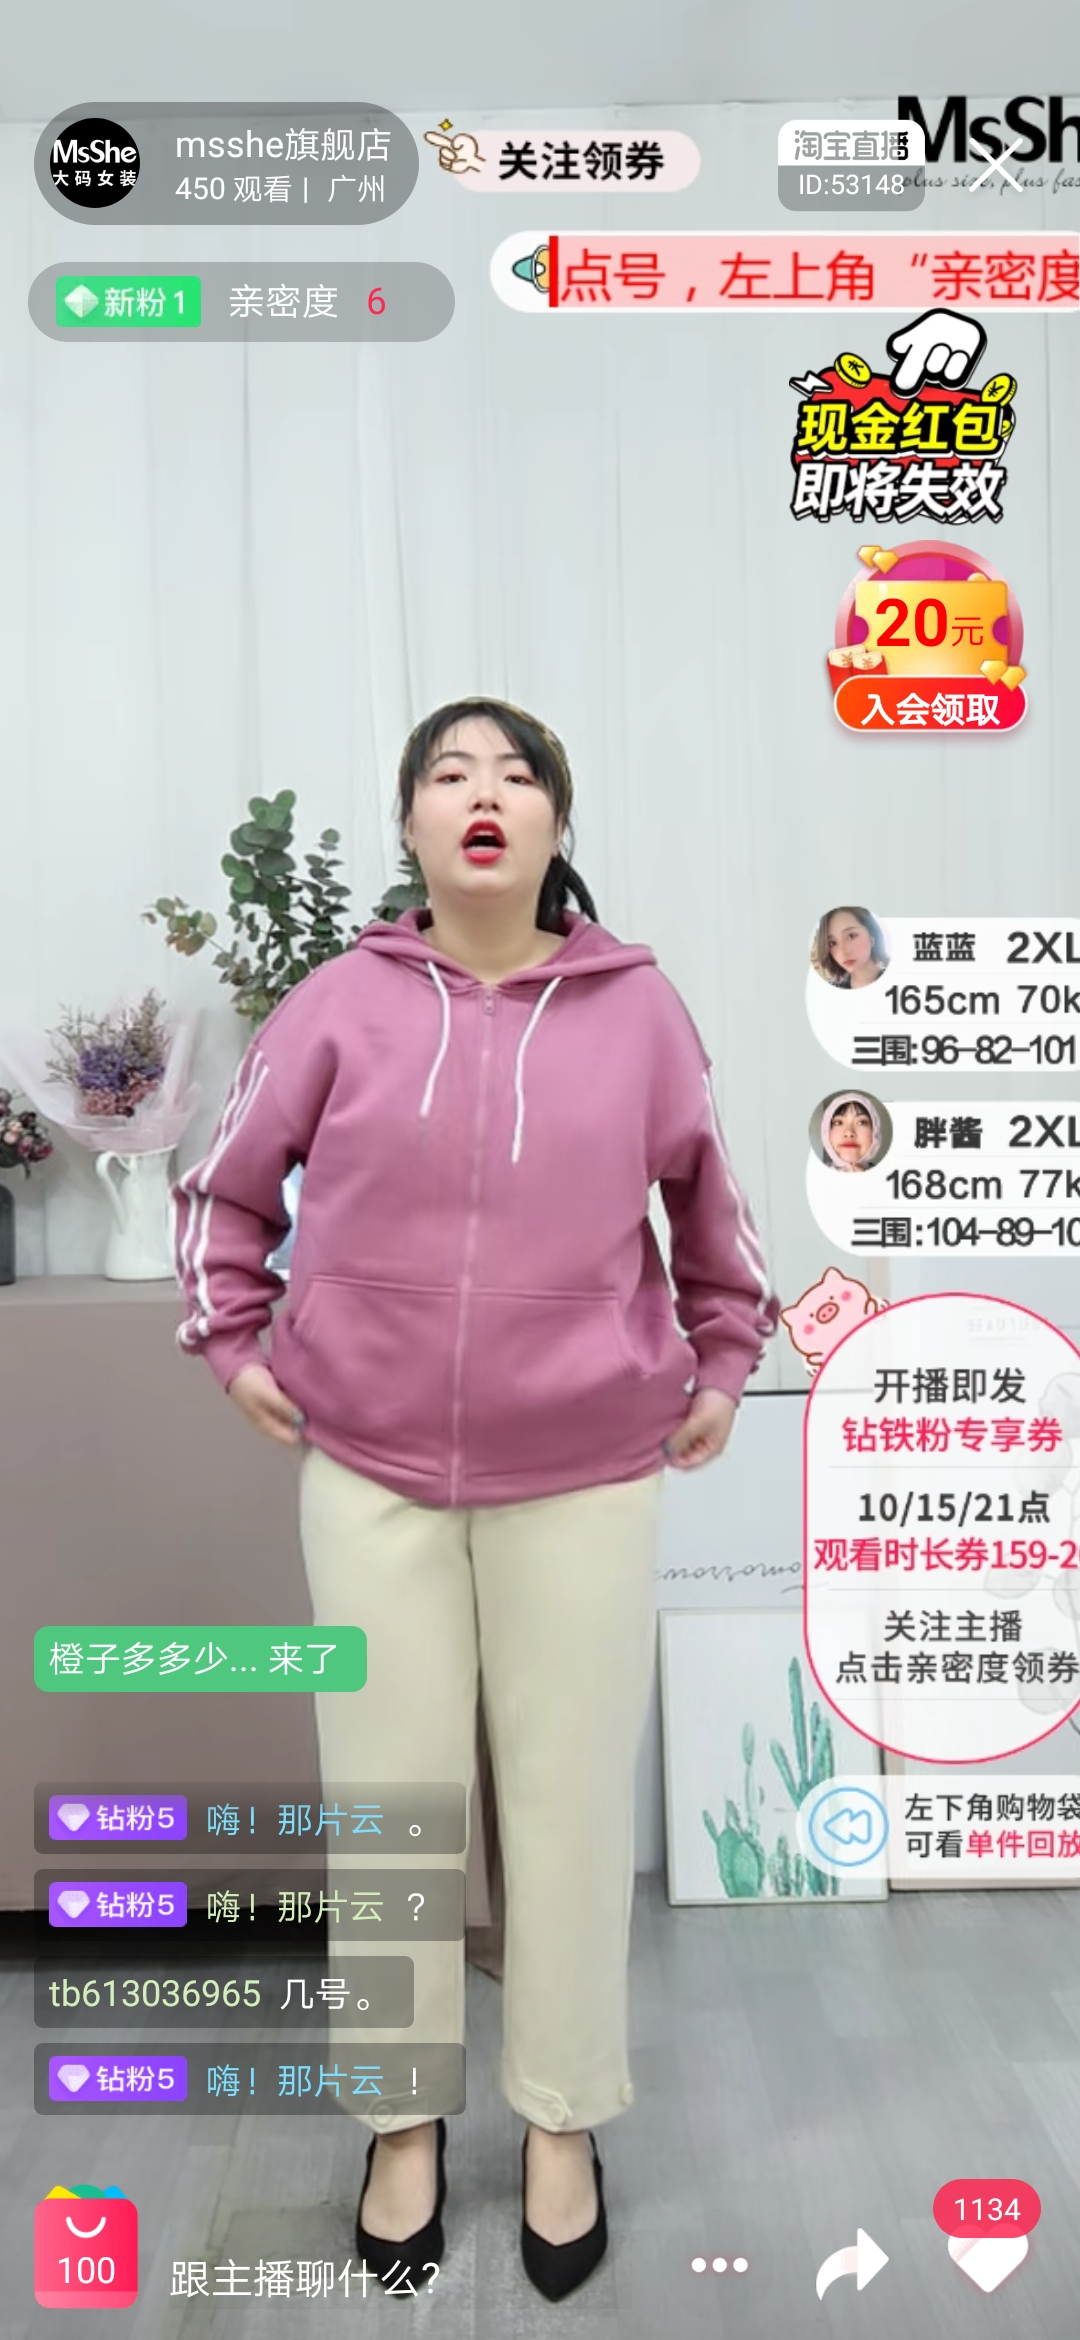 A plus-sized Taobao live-streaming/ -fitting / -selling session. Via, well, Taobao.